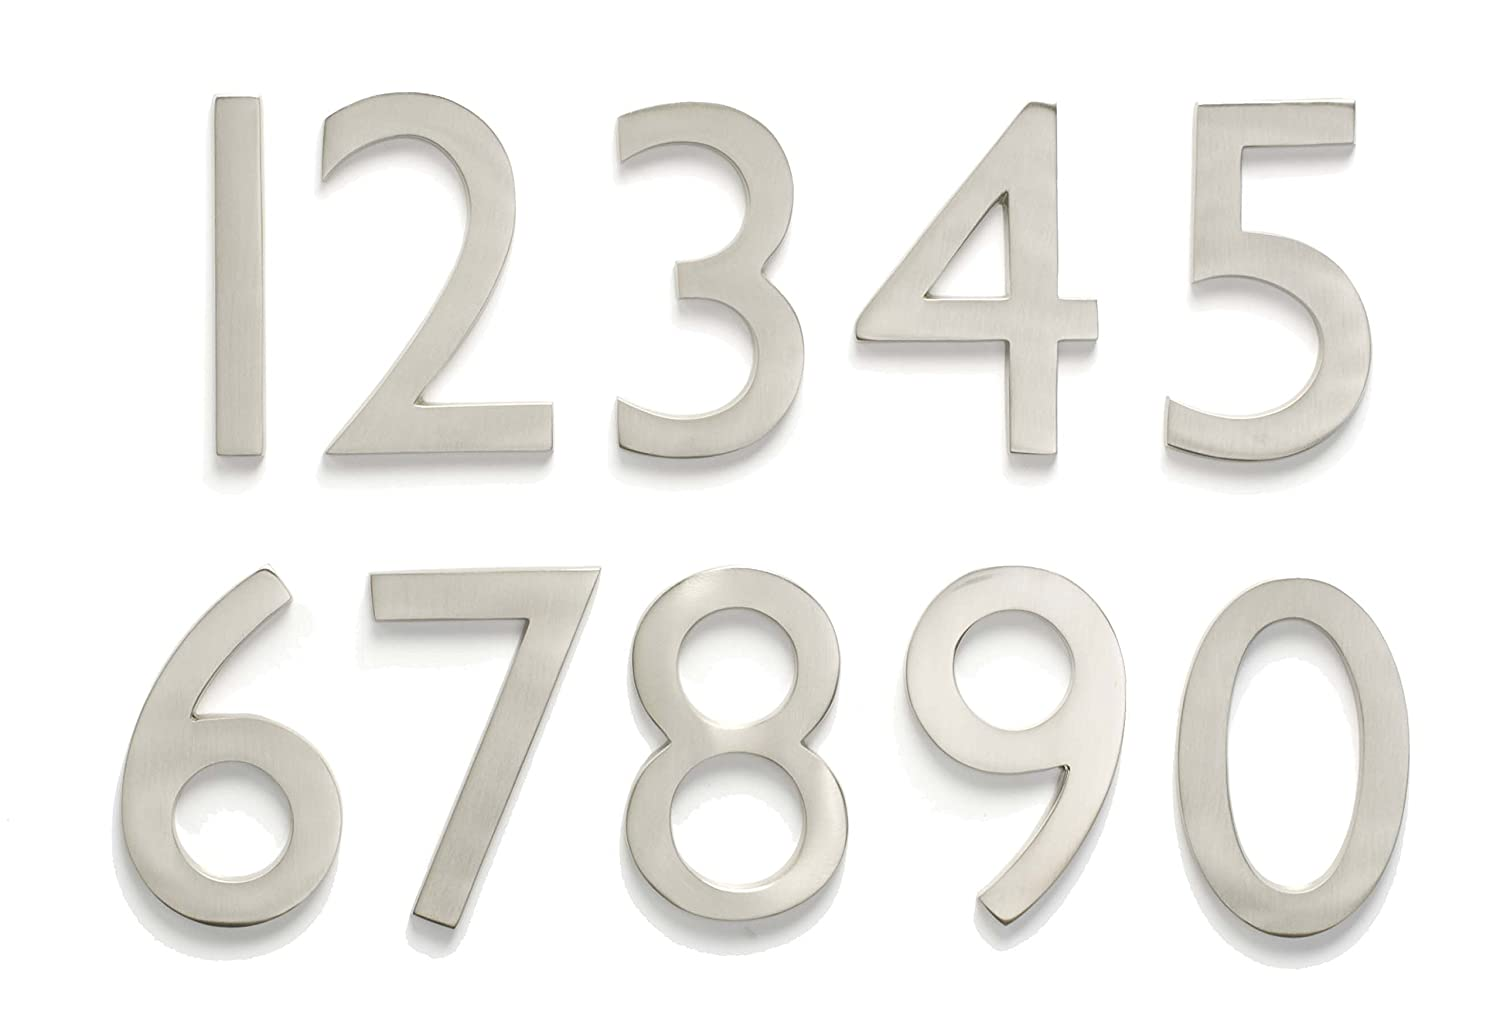 Architectural Mailboxes 3585DC-8  Brass 5-Inch Floating House Number 8 Dark Aged Copper